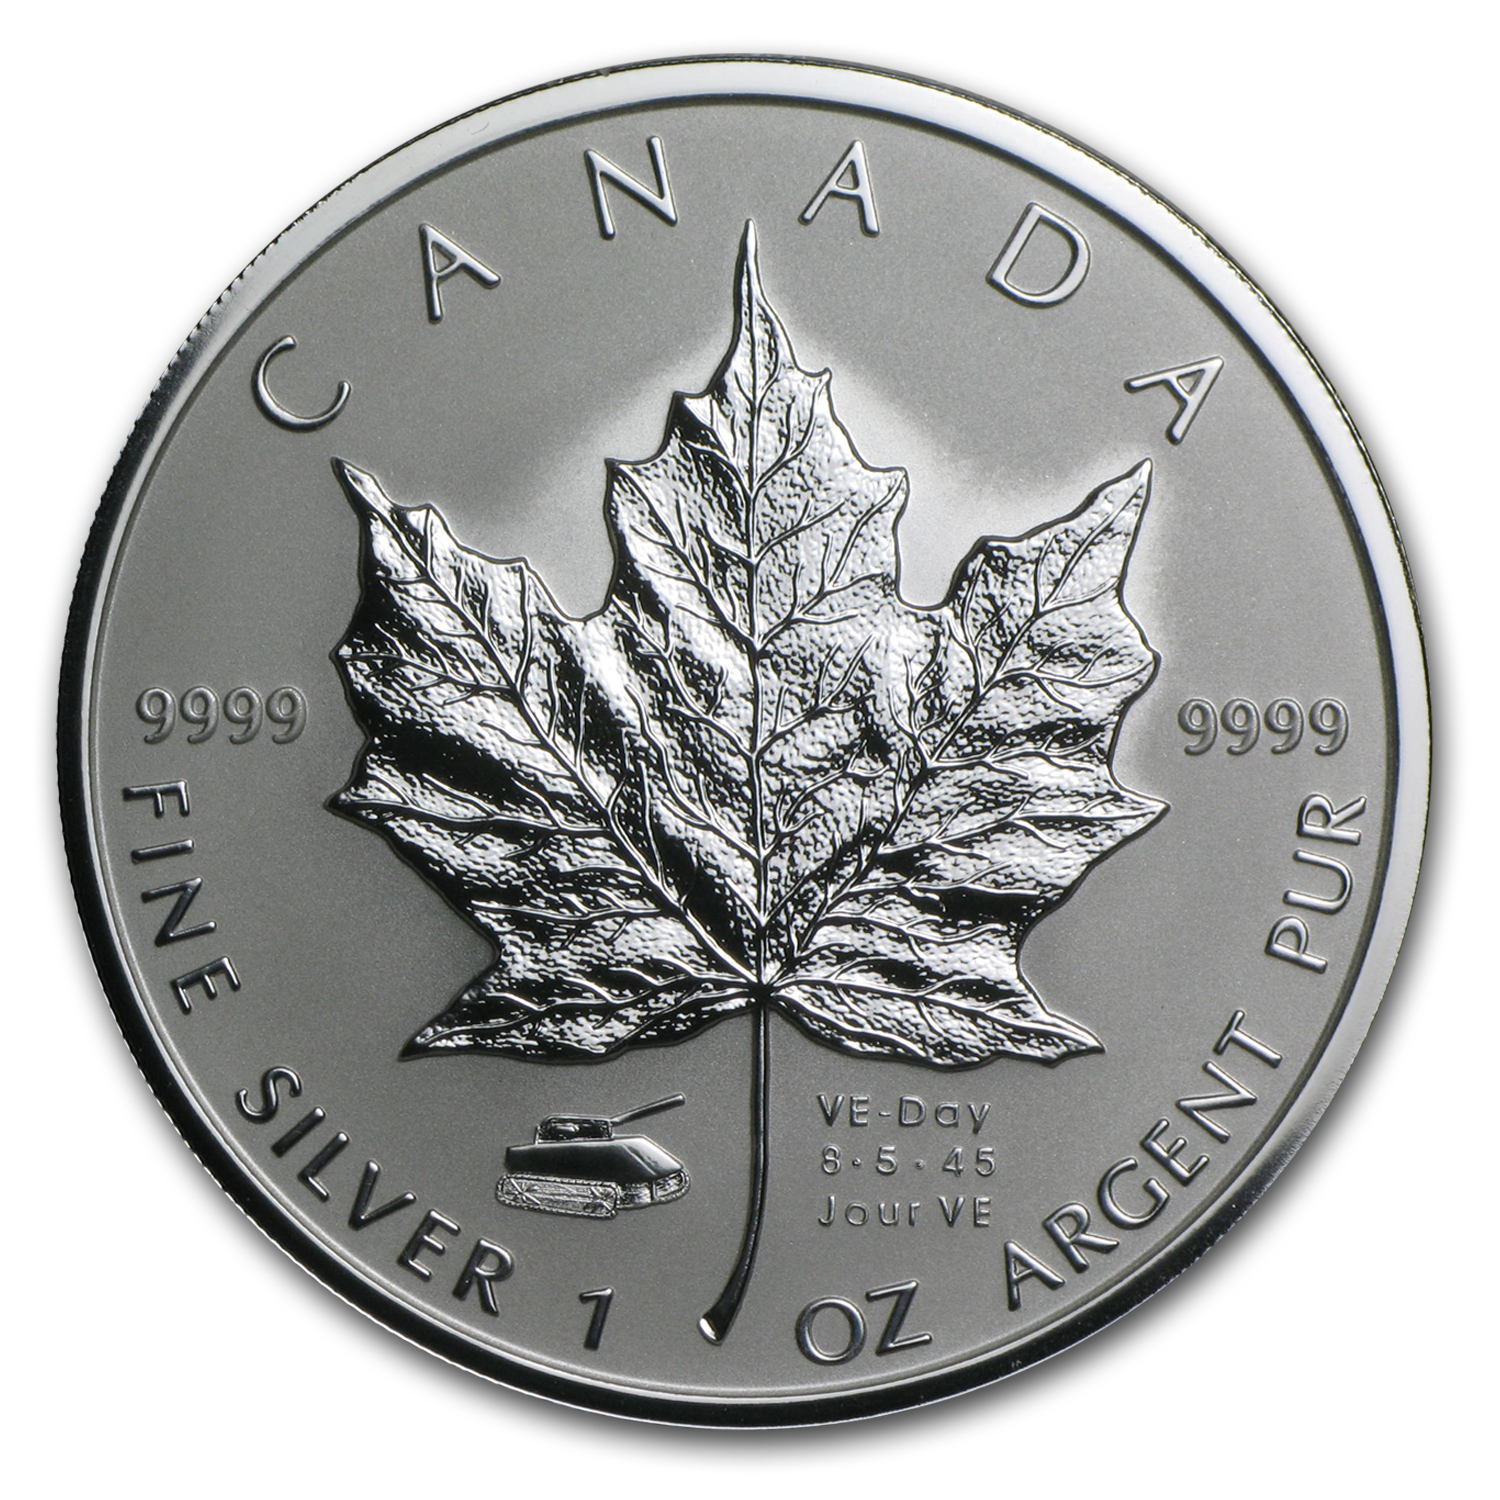 2005 Canada 1 oz Silver Maple Leaf VE-Day Tank Privy